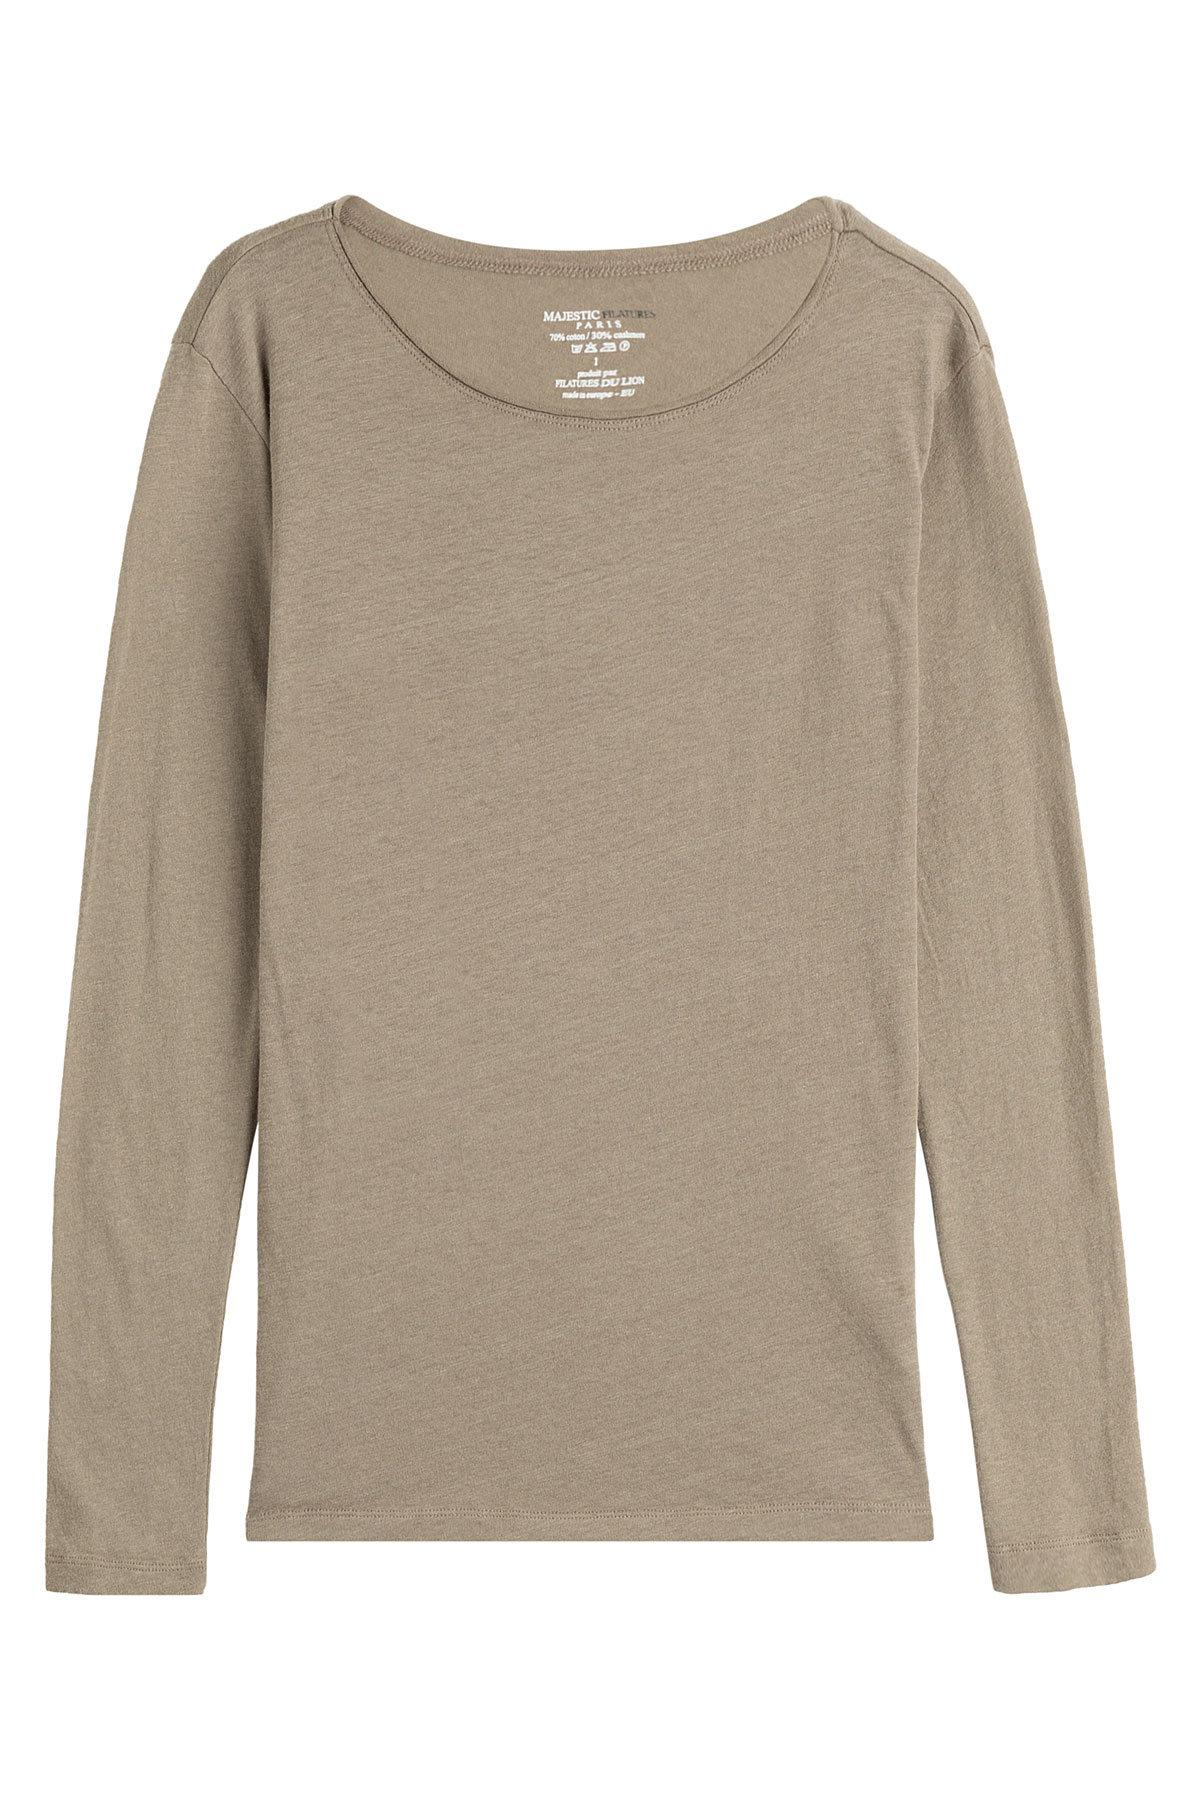 Lyst Majestic Filatures Cotton Cashmere Long Sleeved Top